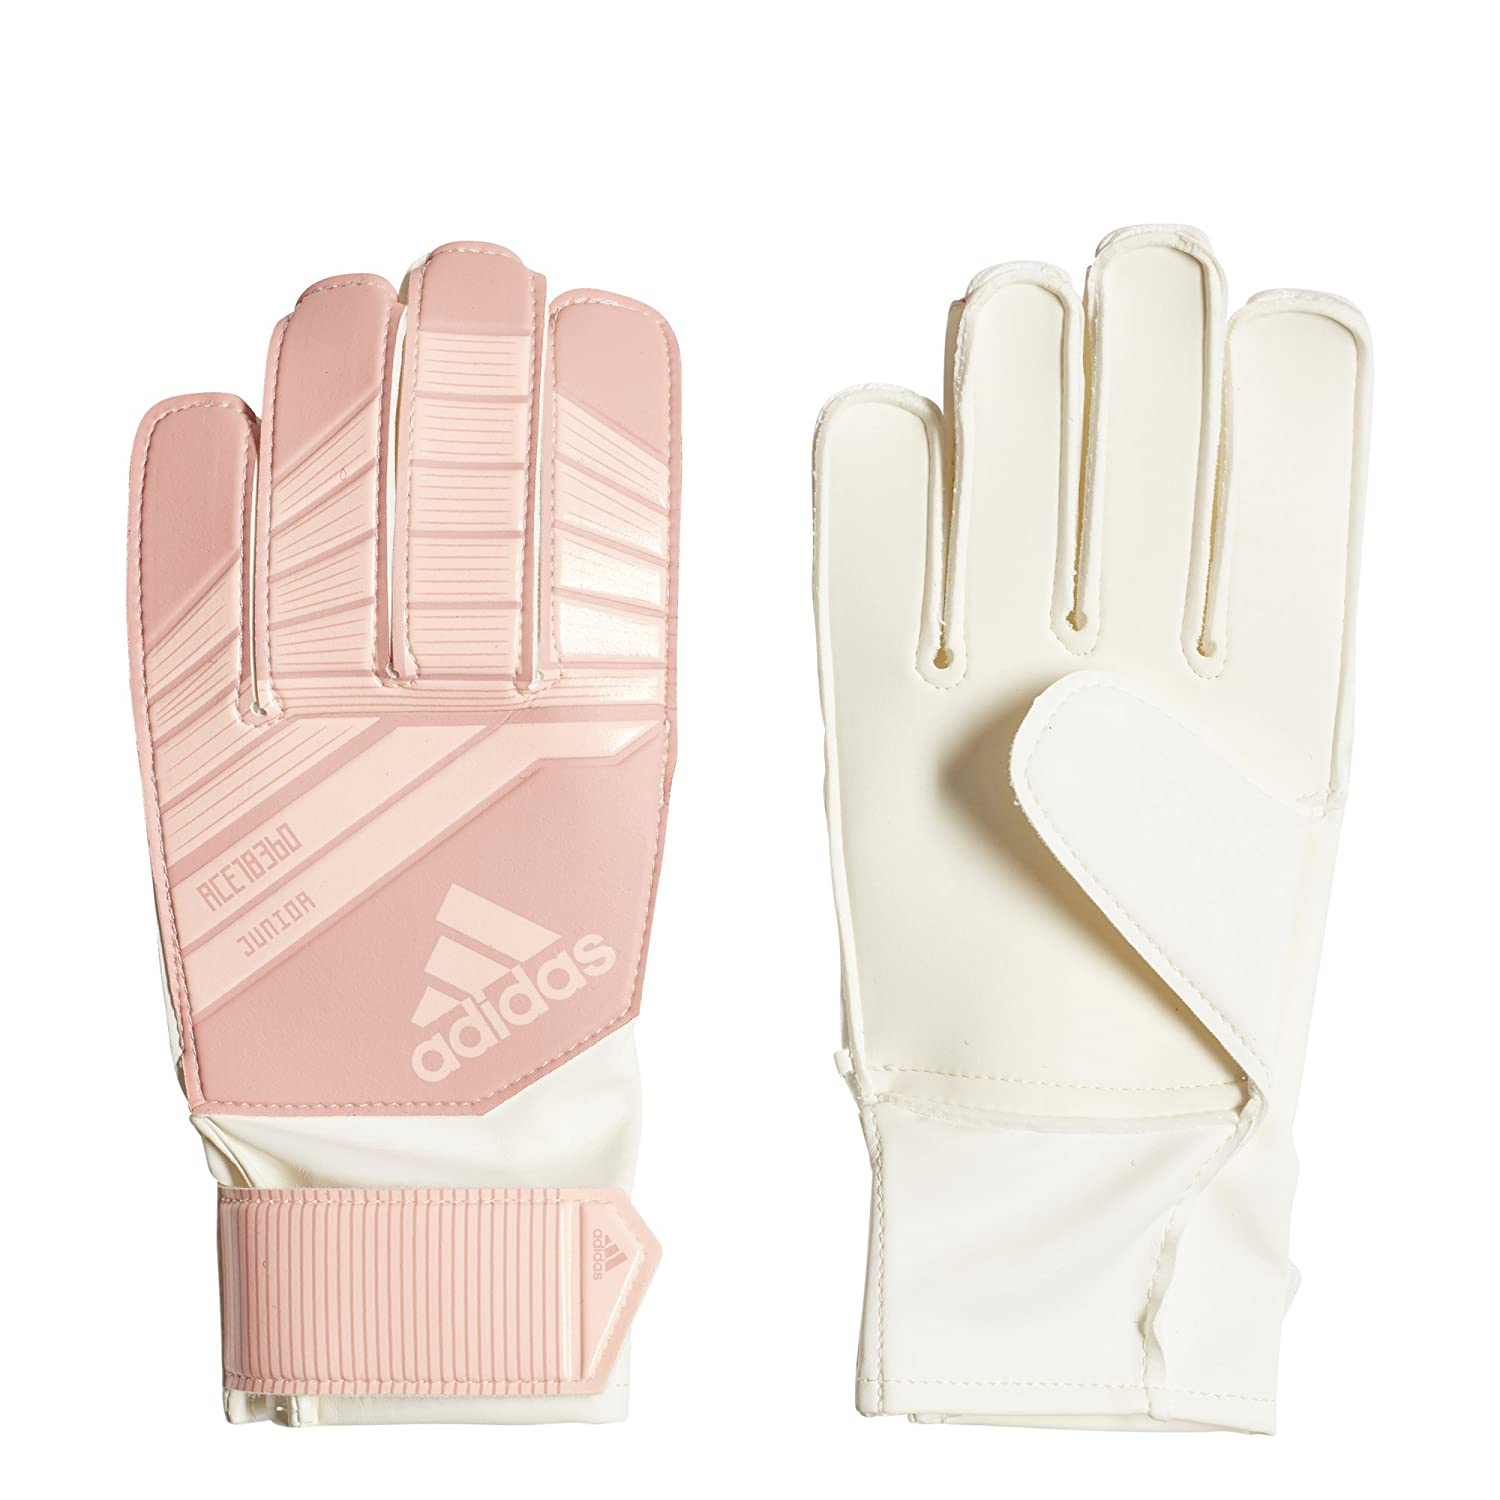 Adidas Predator Fingersaveジュニアサッカー手袋 B07886HC7Y Size 7|Clear Orange/Trace Pink Clear Orange/Trace Pink Size 7